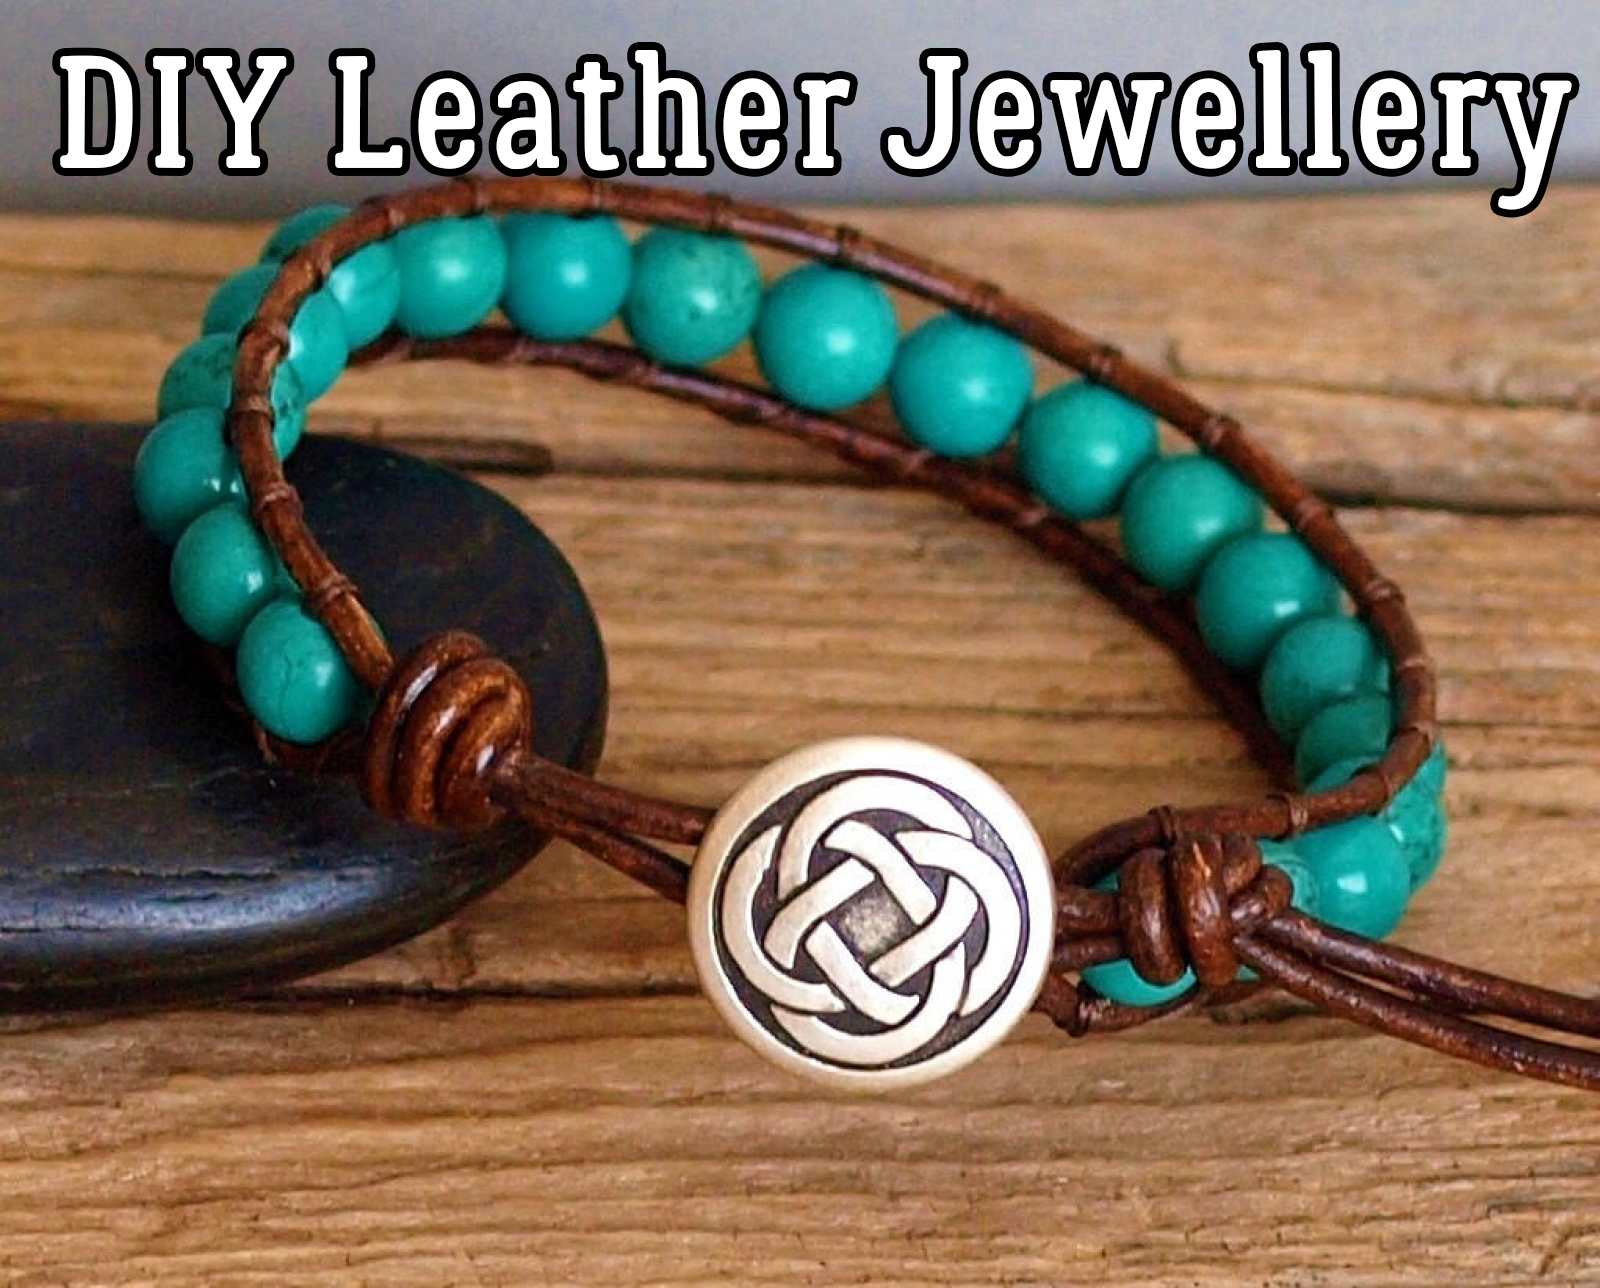 DIY Leather Jewellery